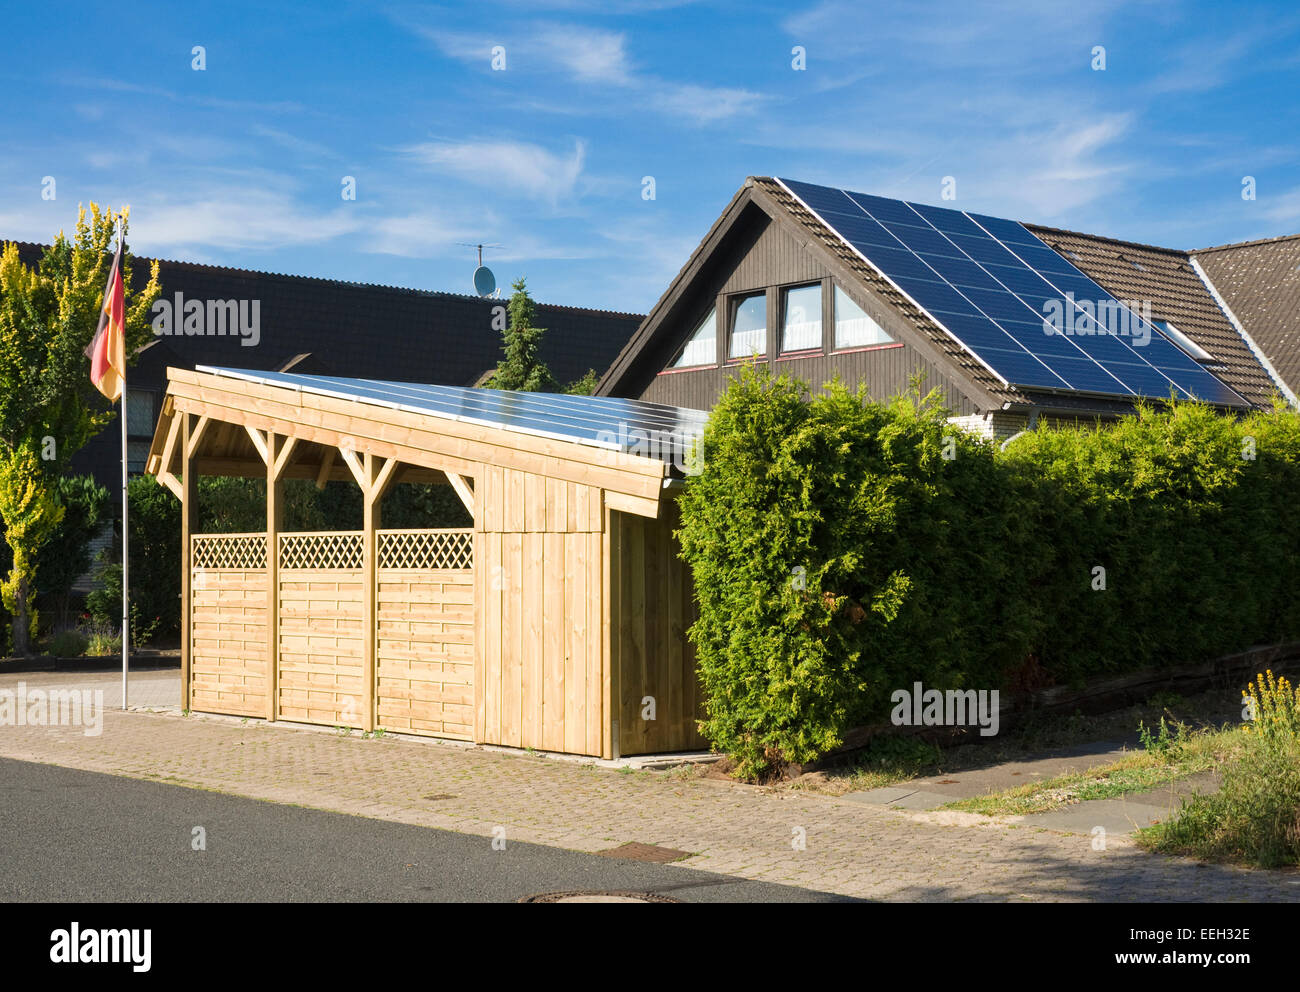 Solar Carport 'Sunport' providing shelter and charging energy for two electric cars or plug-in hybrid like - Stock Image